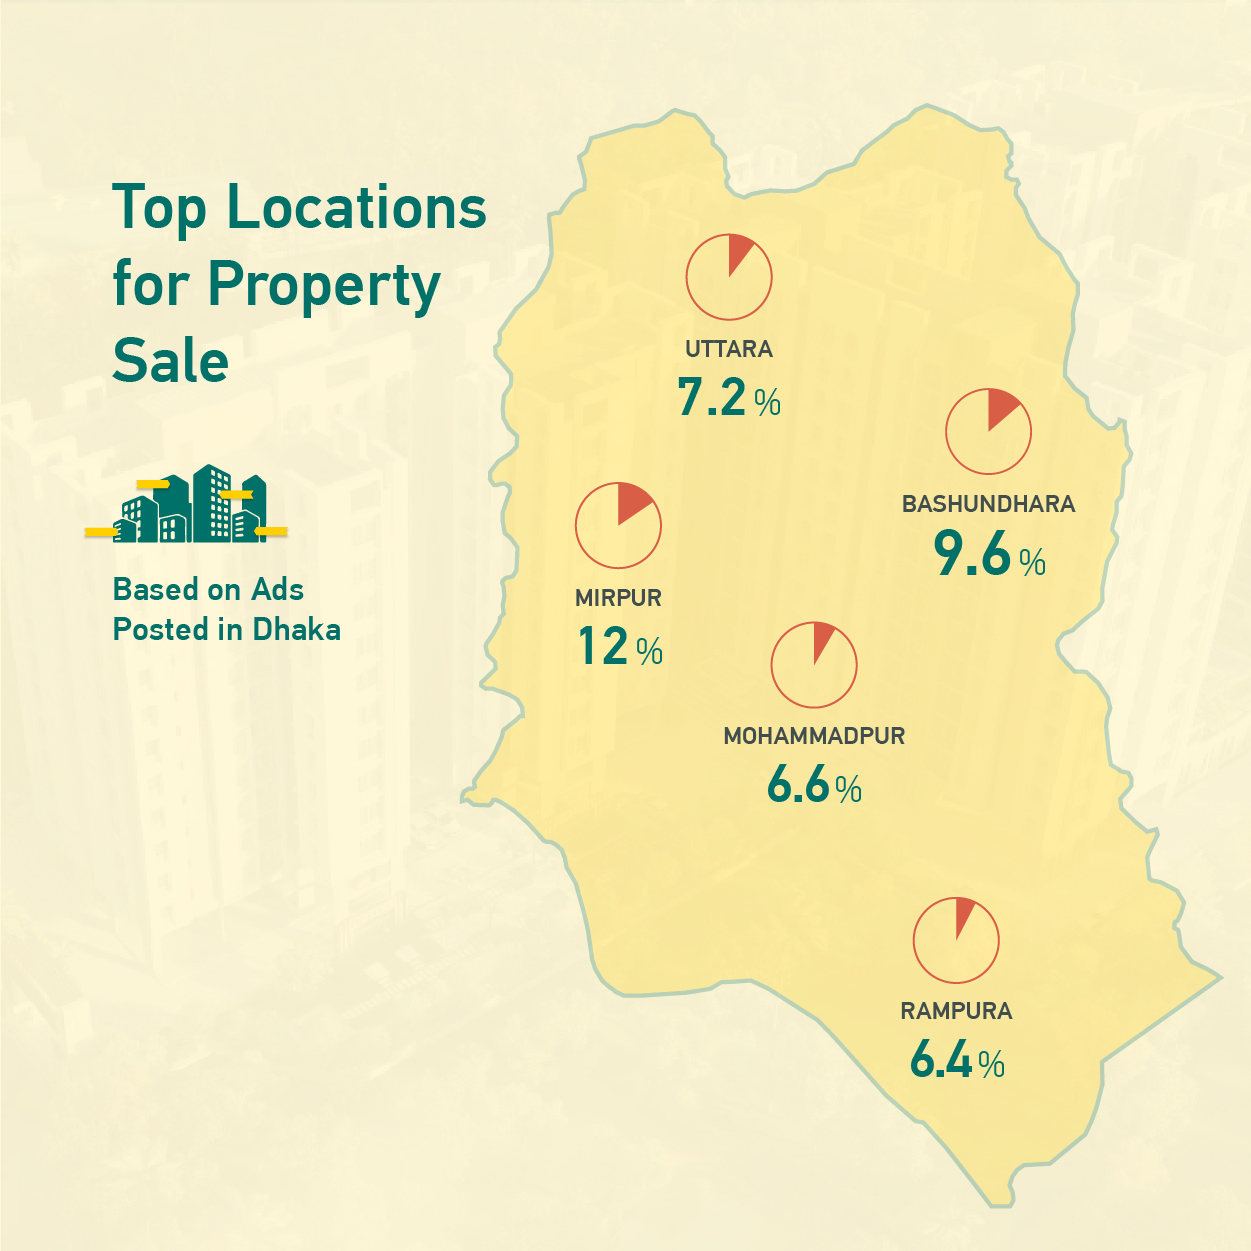 Top Locations for Property Sale in Dhaka